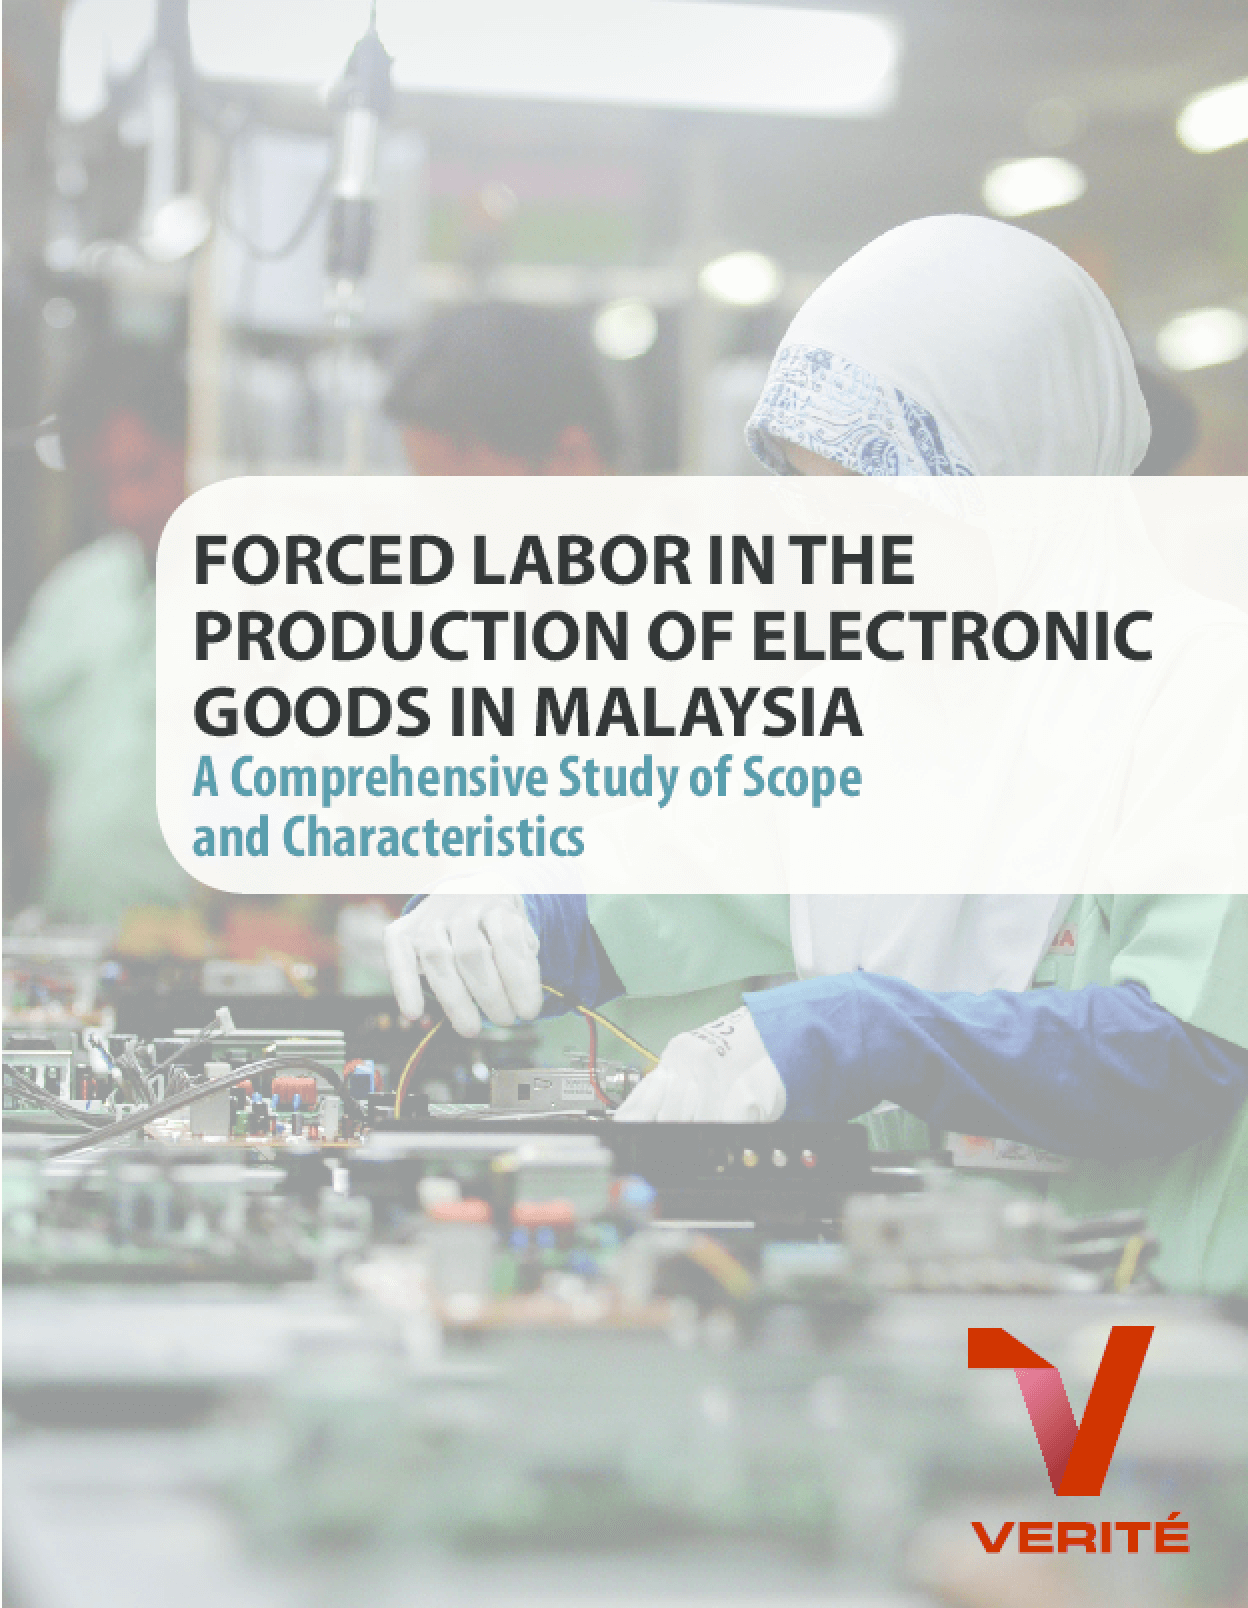 Forced Labor in the Production of Electronic Goods in Malaysia: A Comprehensive Study of Scope and Characteristics